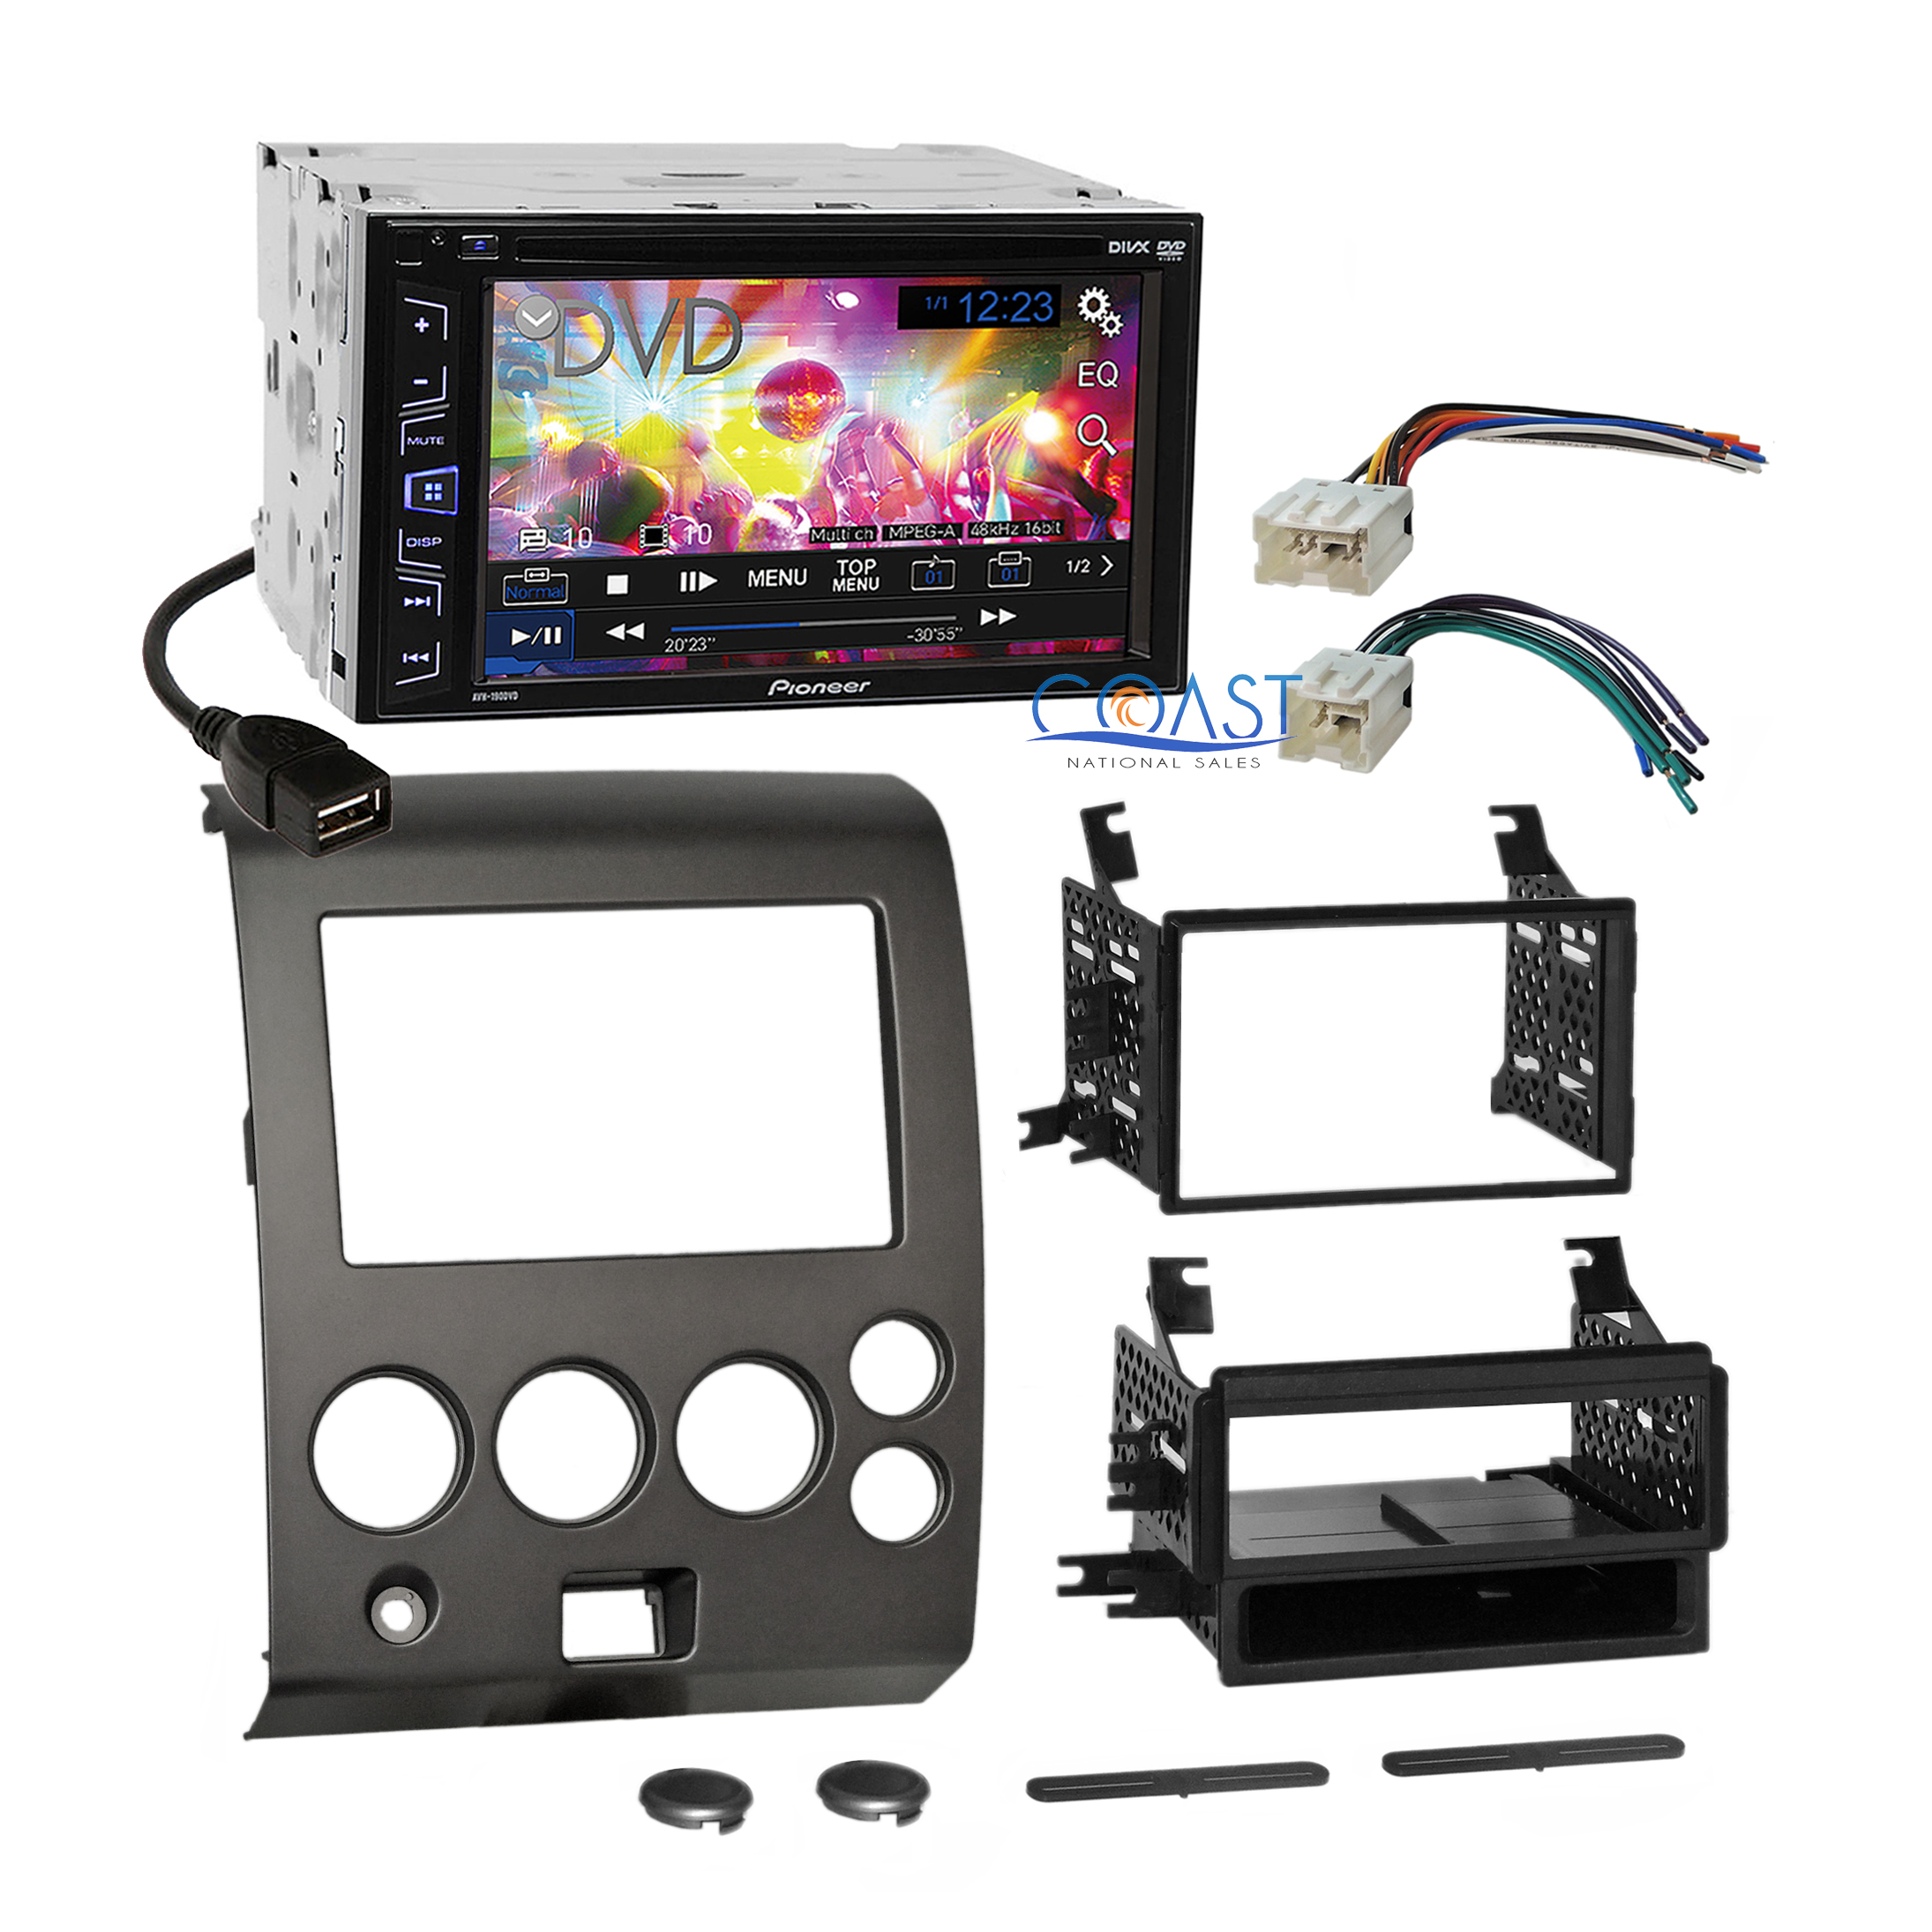 Pioneer DVD Touchscreen Car Stereo Dash Kit Harness for 04+ Nissan on engine harness, pony harness, cable harness, oxygen sensor extension harness, maxi-seal harness, pet harness, alpine stereo harness, fall protection harness, suspension harness, radio harness, amp bypass harness, safety harness, swing harness, electrical harness, nakamichi harness, battery harness, dog harness, obd0 to obd1 conversion harness,